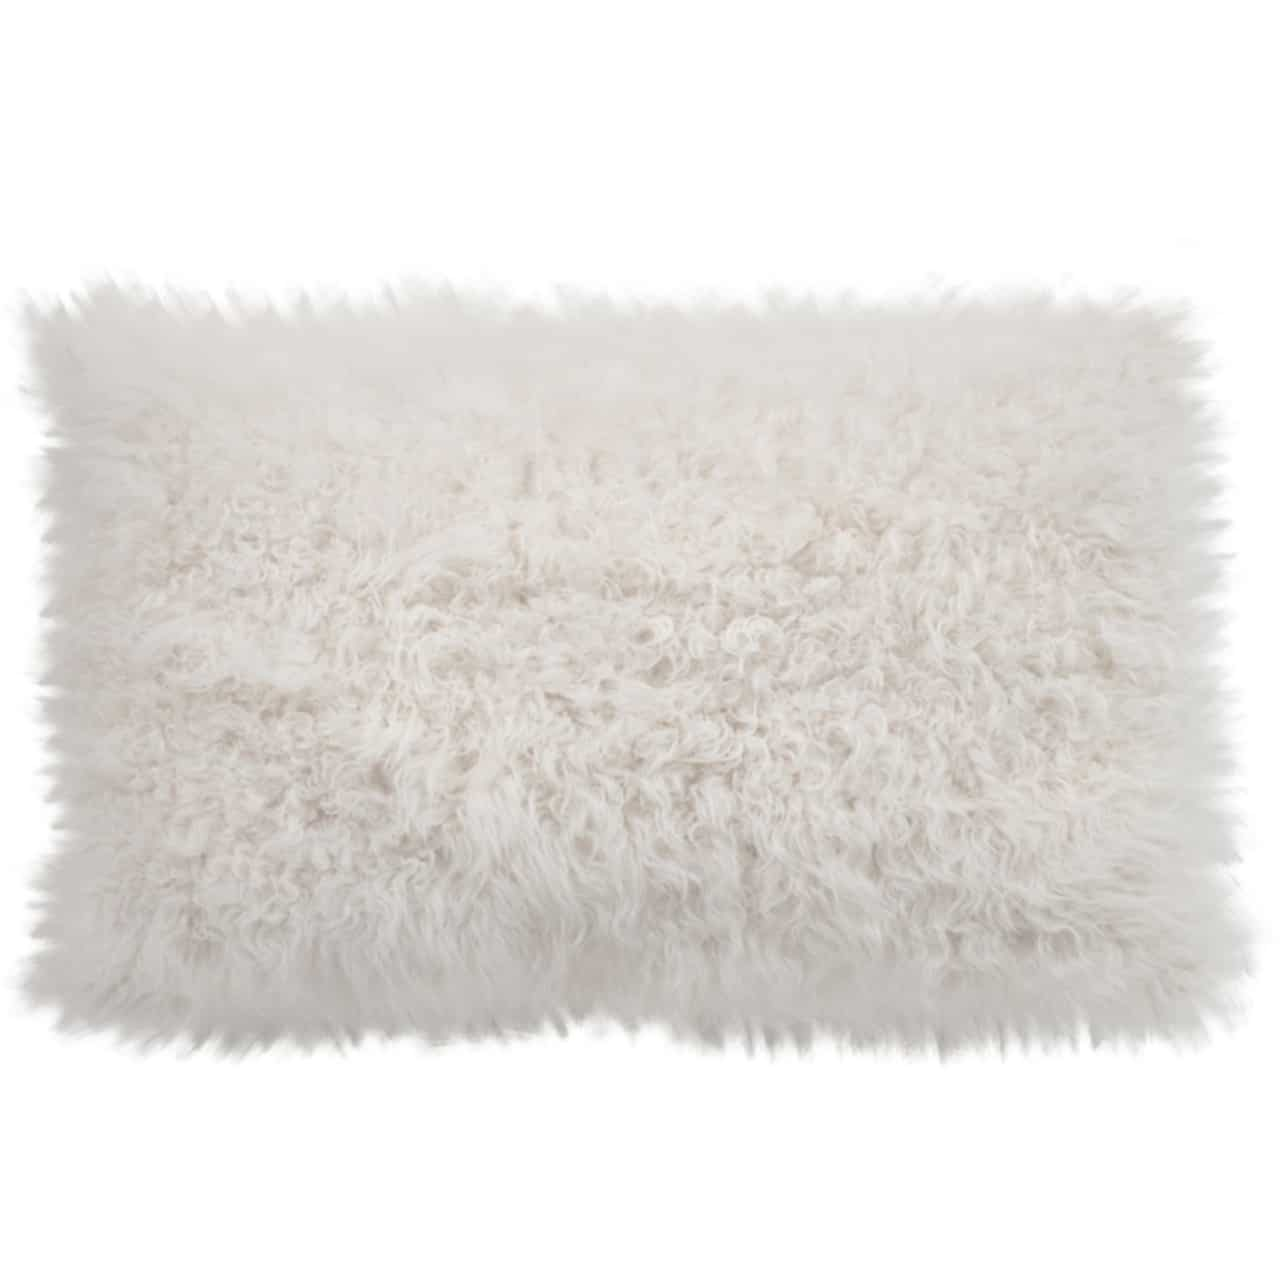 NEW-Shearling Pillow- Ceramic Curly- 35x55cm (TPCERCR3555) - ANVOGG FEEL SHEARLING | ANVOGG